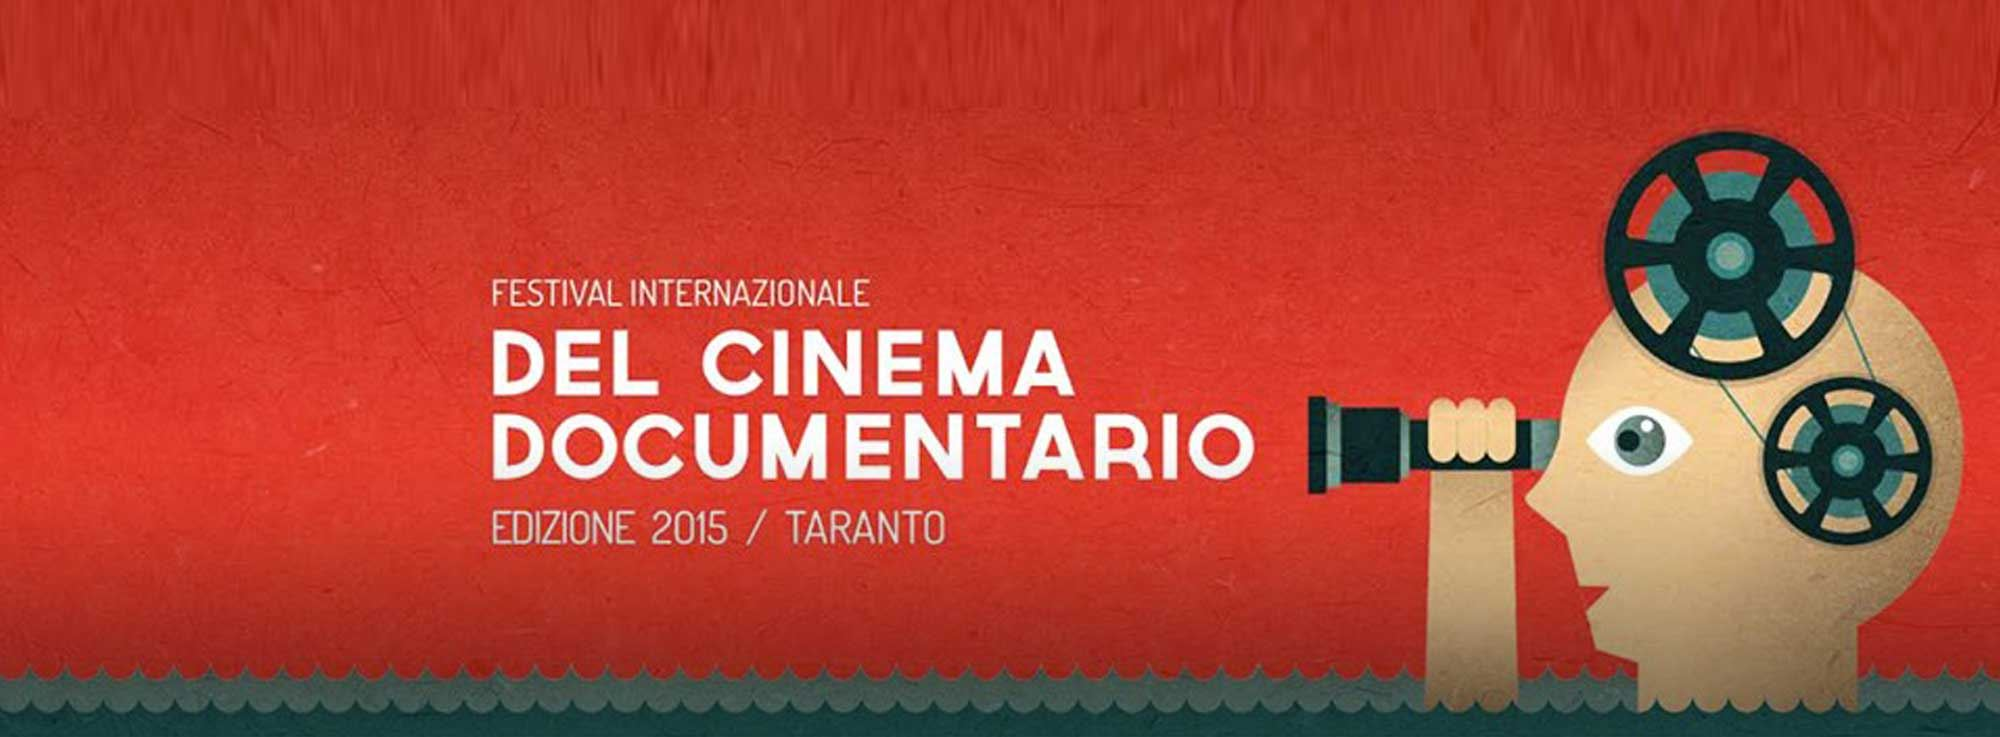 Taranto: Festival del Cinema Documentario